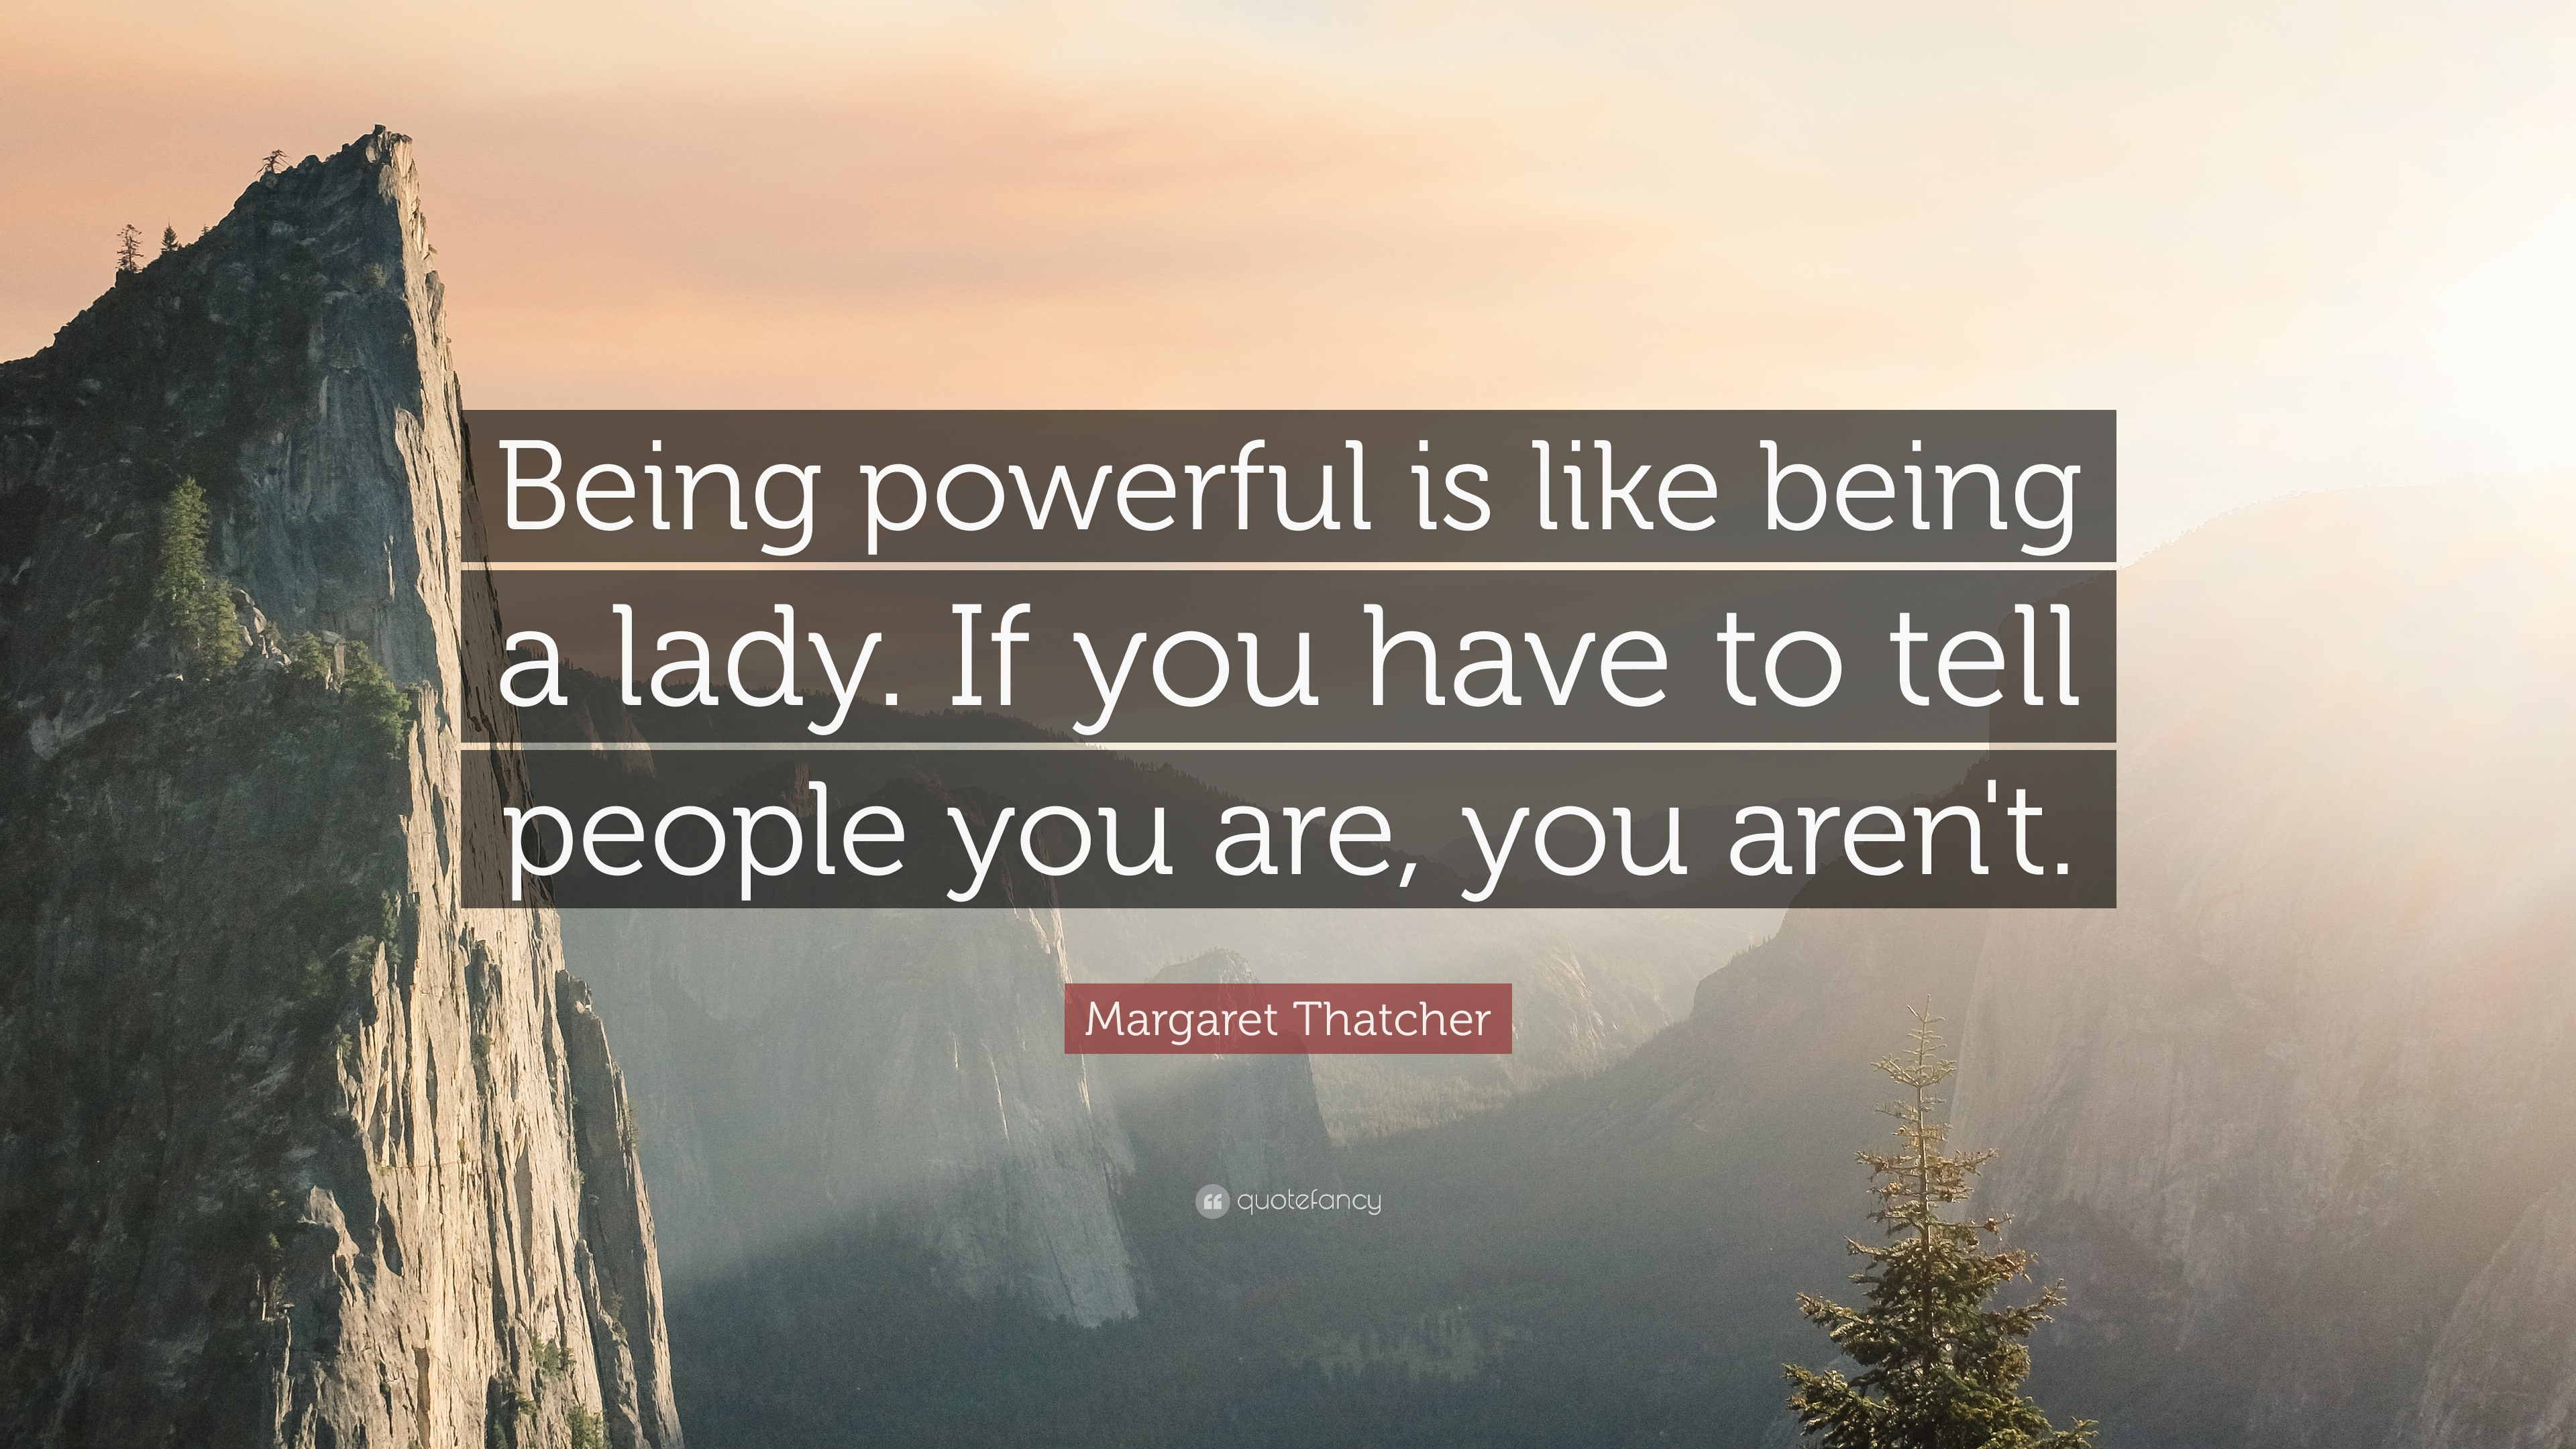 Quotes about being powerful